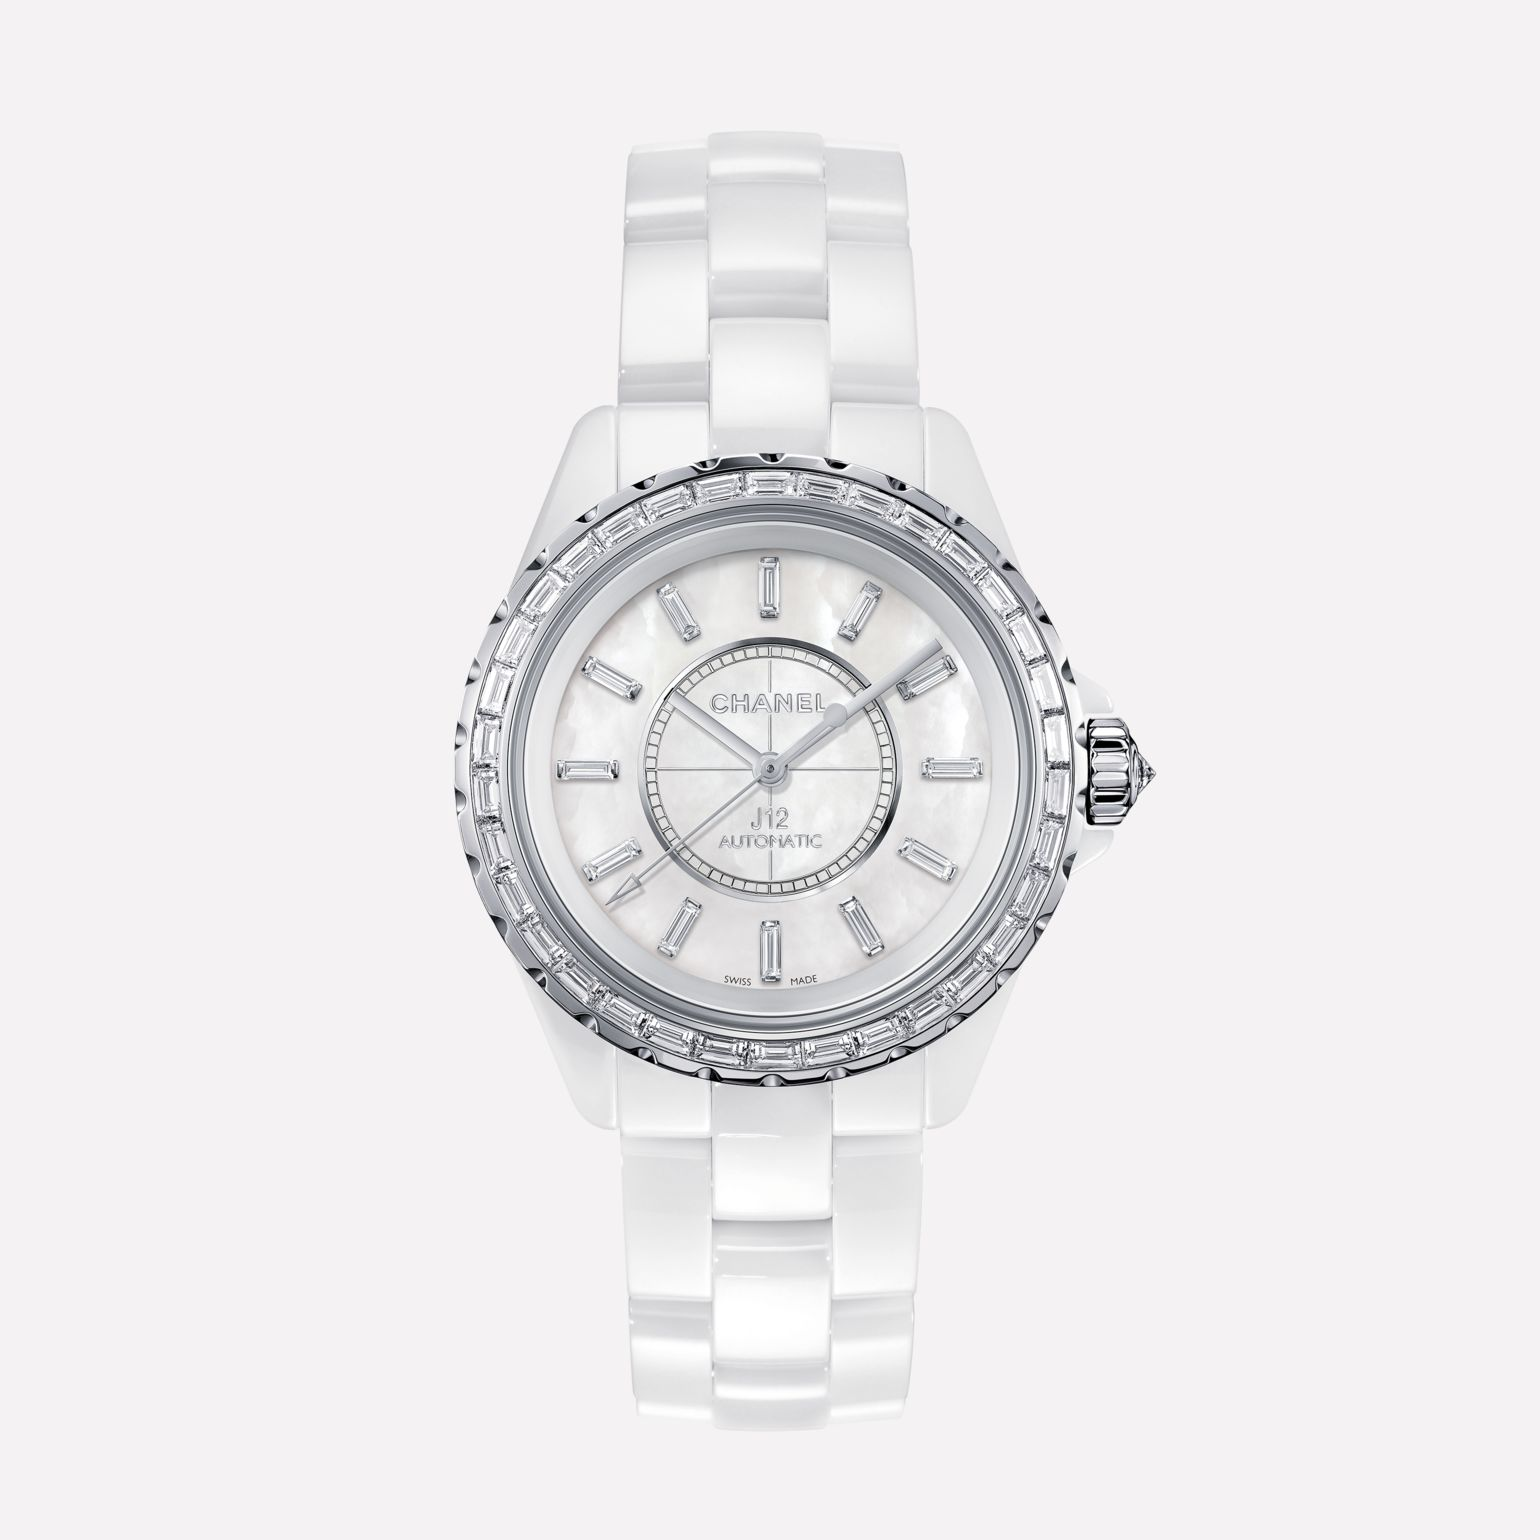 J12 Jewelry Watch, 38 mm White highly-resistant ceramic and white gold, baguette-cut diamond bezel and indicators